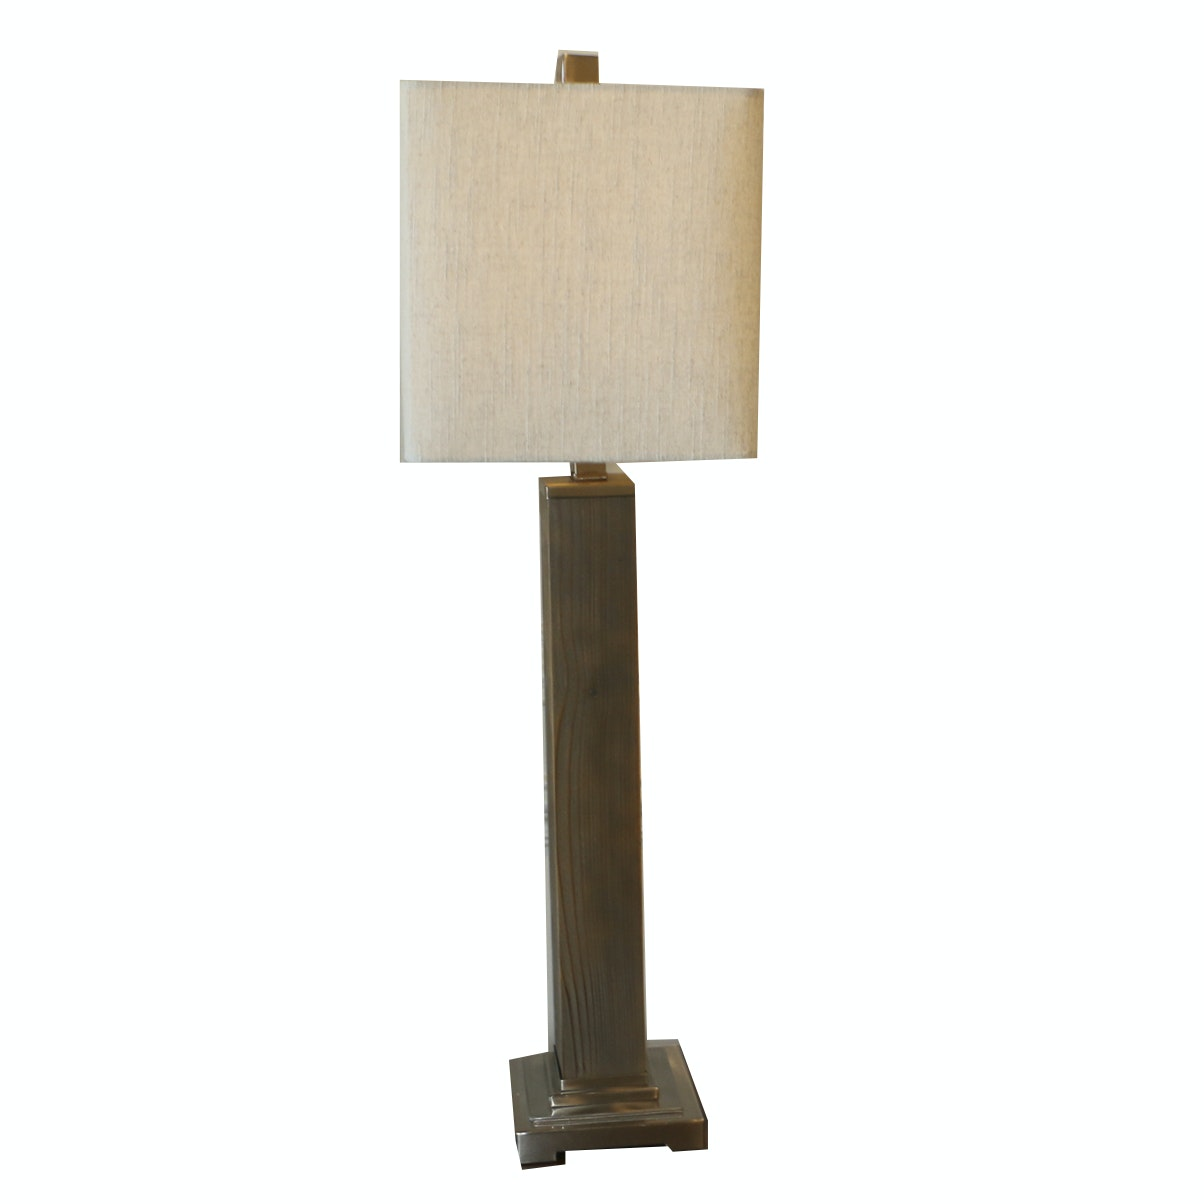 Pillar Accent Lamp with Square Shade